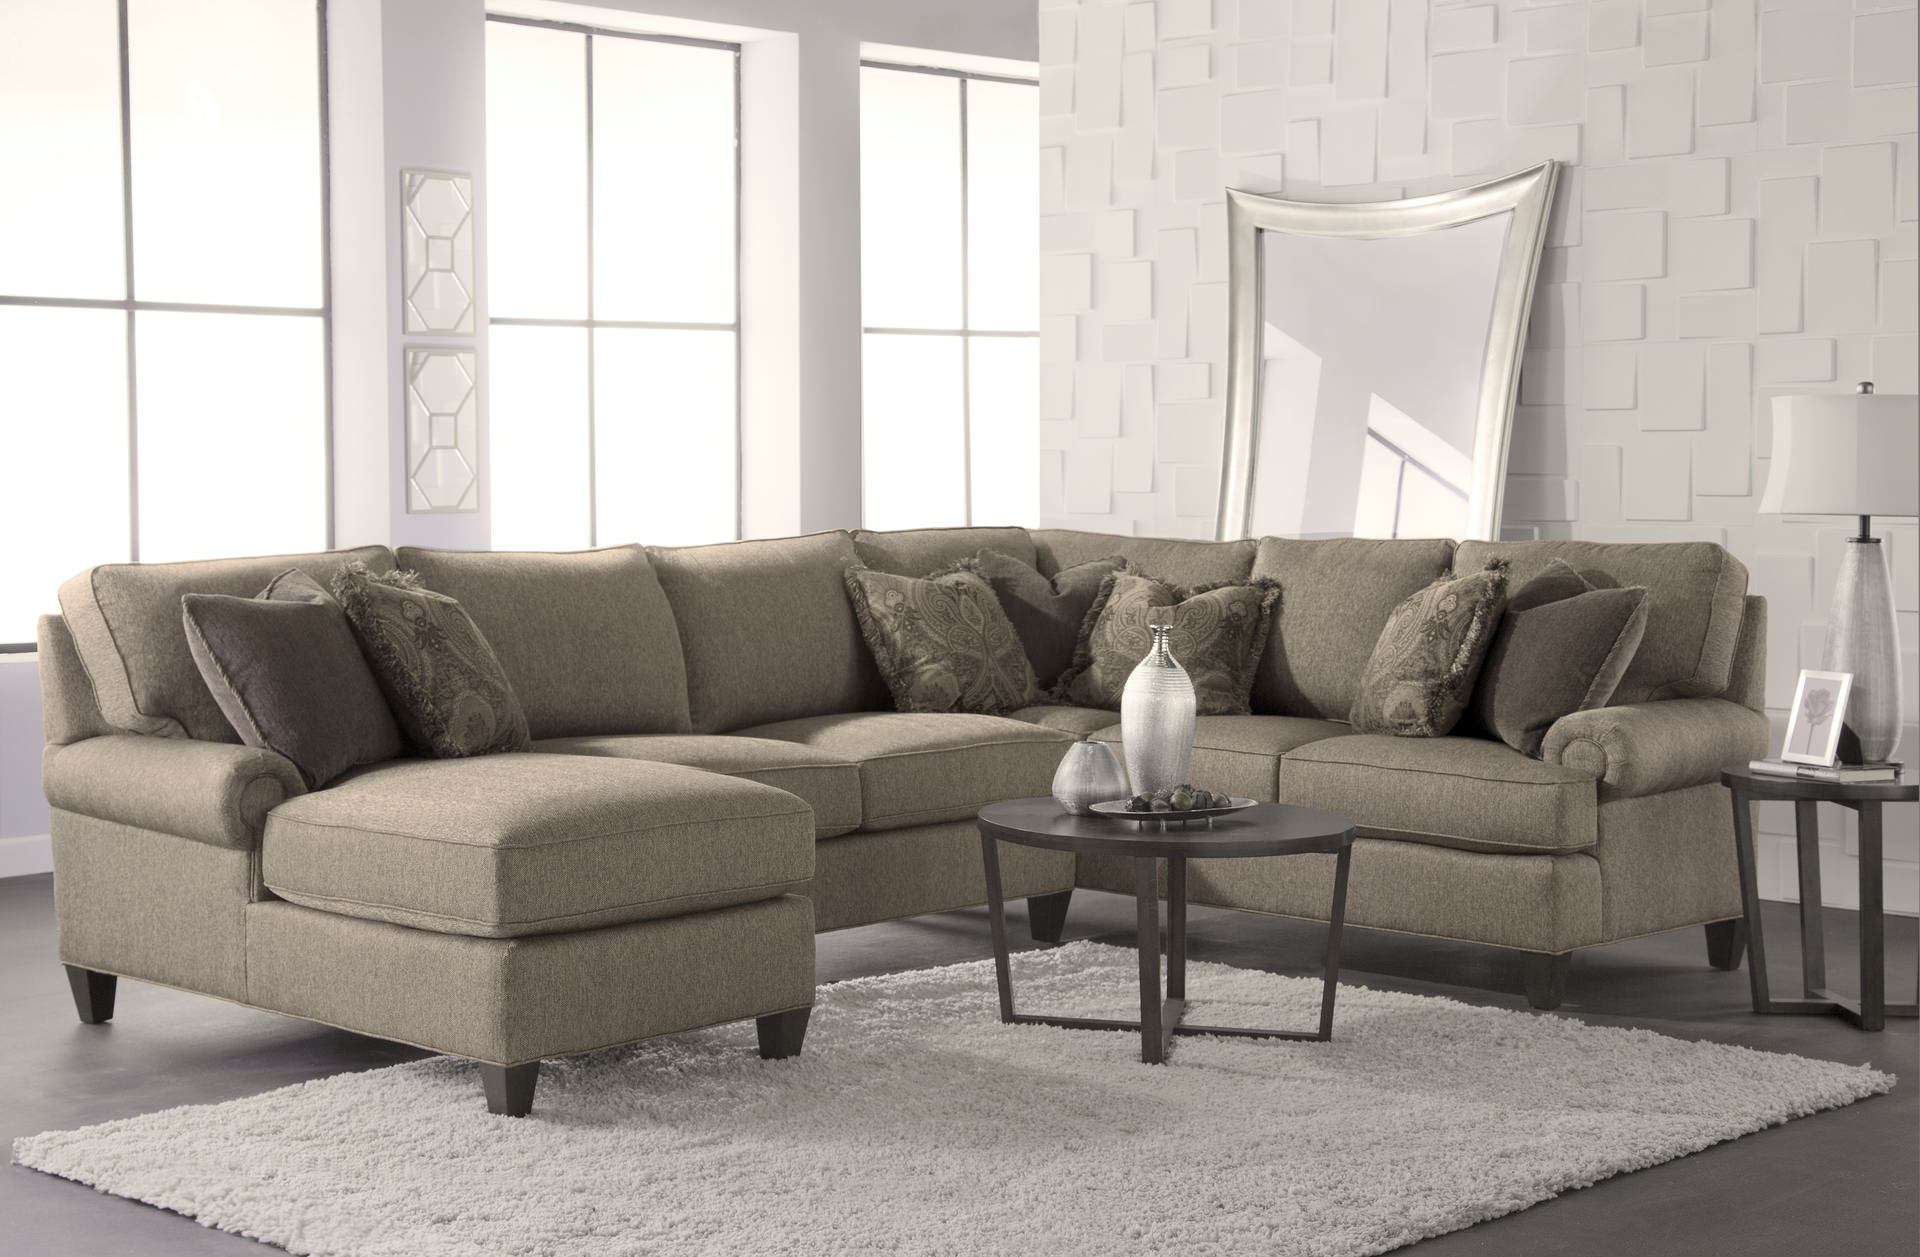 2018 Malbry Point 3 Piece Sectionals With Raf Chaise Regarding Sectional Matters – Design Bloghom Furniture (Gallery 17 of 20)